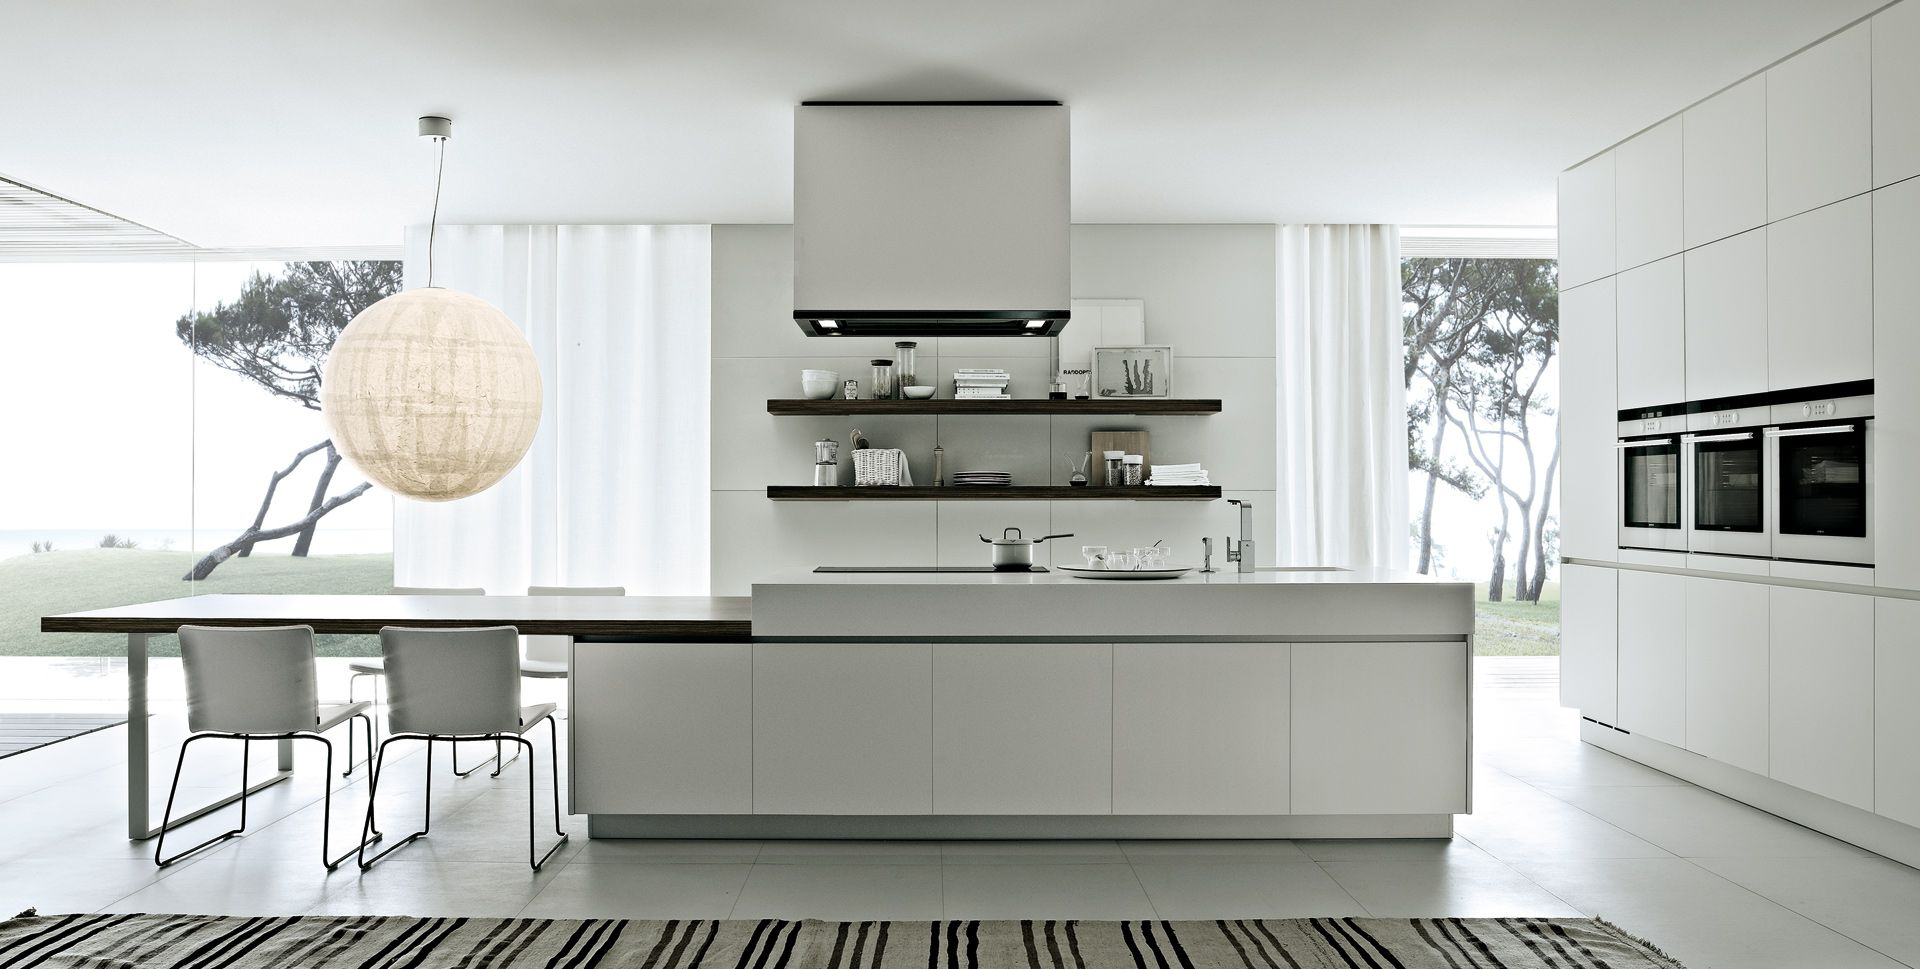 MINIMAL KITCHEN CABINETRY Designed by Poliform | Switch Modern In ...